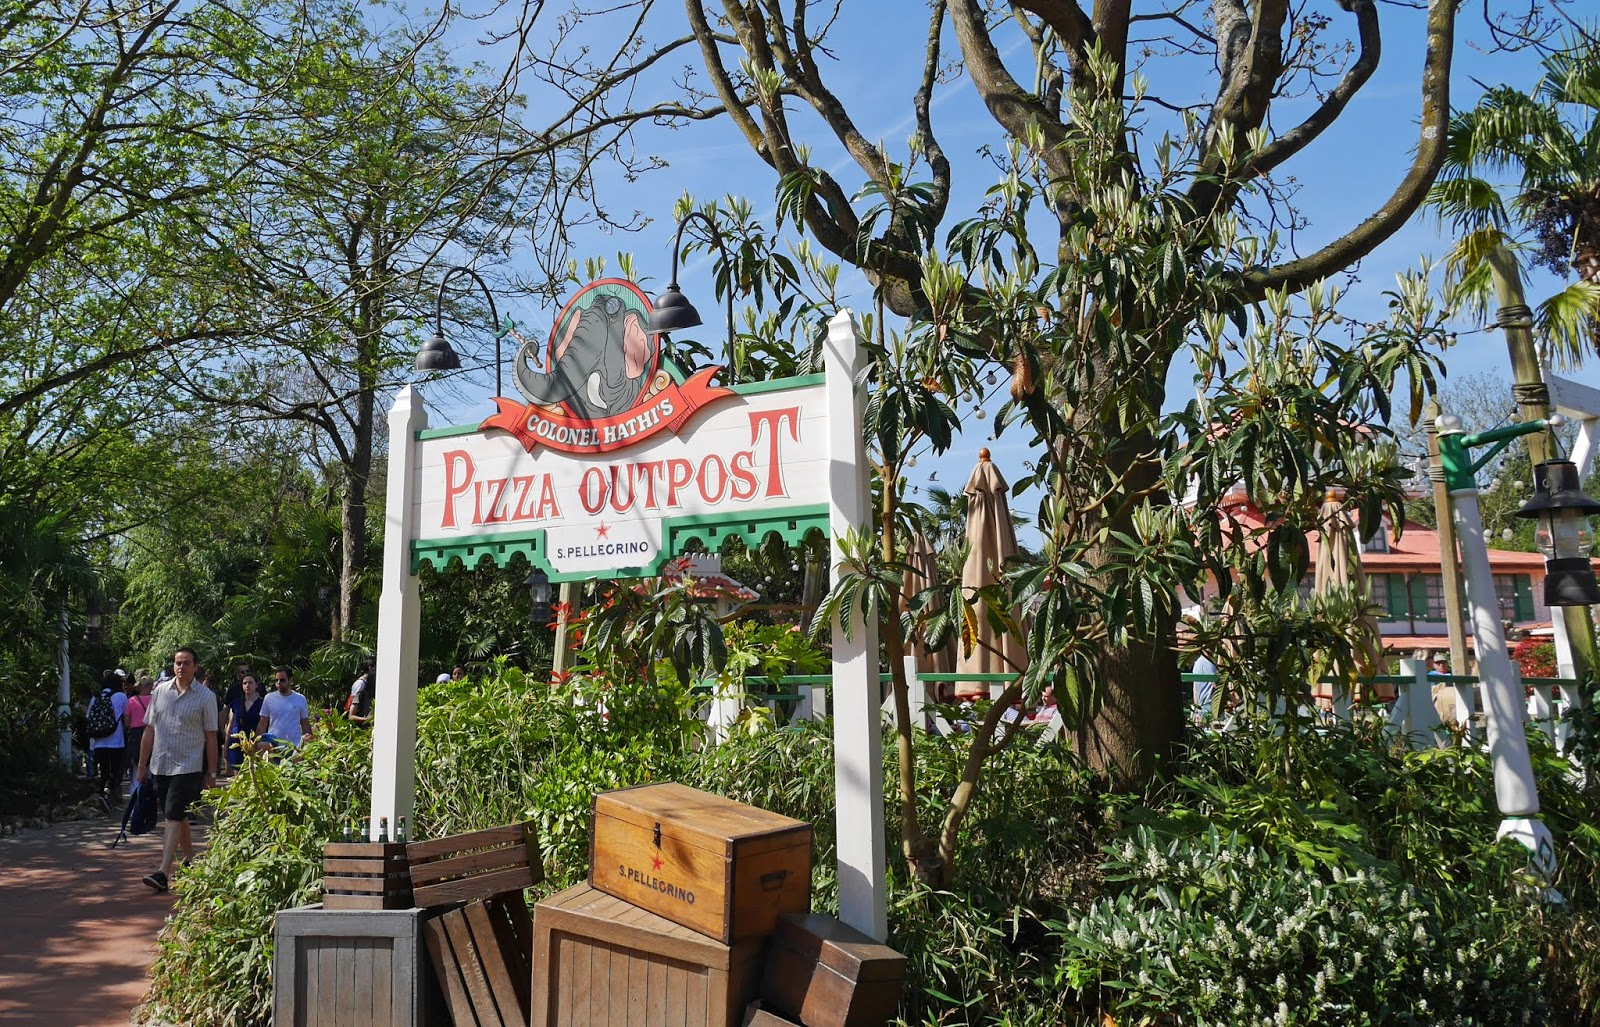 Colonel Hathi's Pizza Outpost at Disneyland Paris